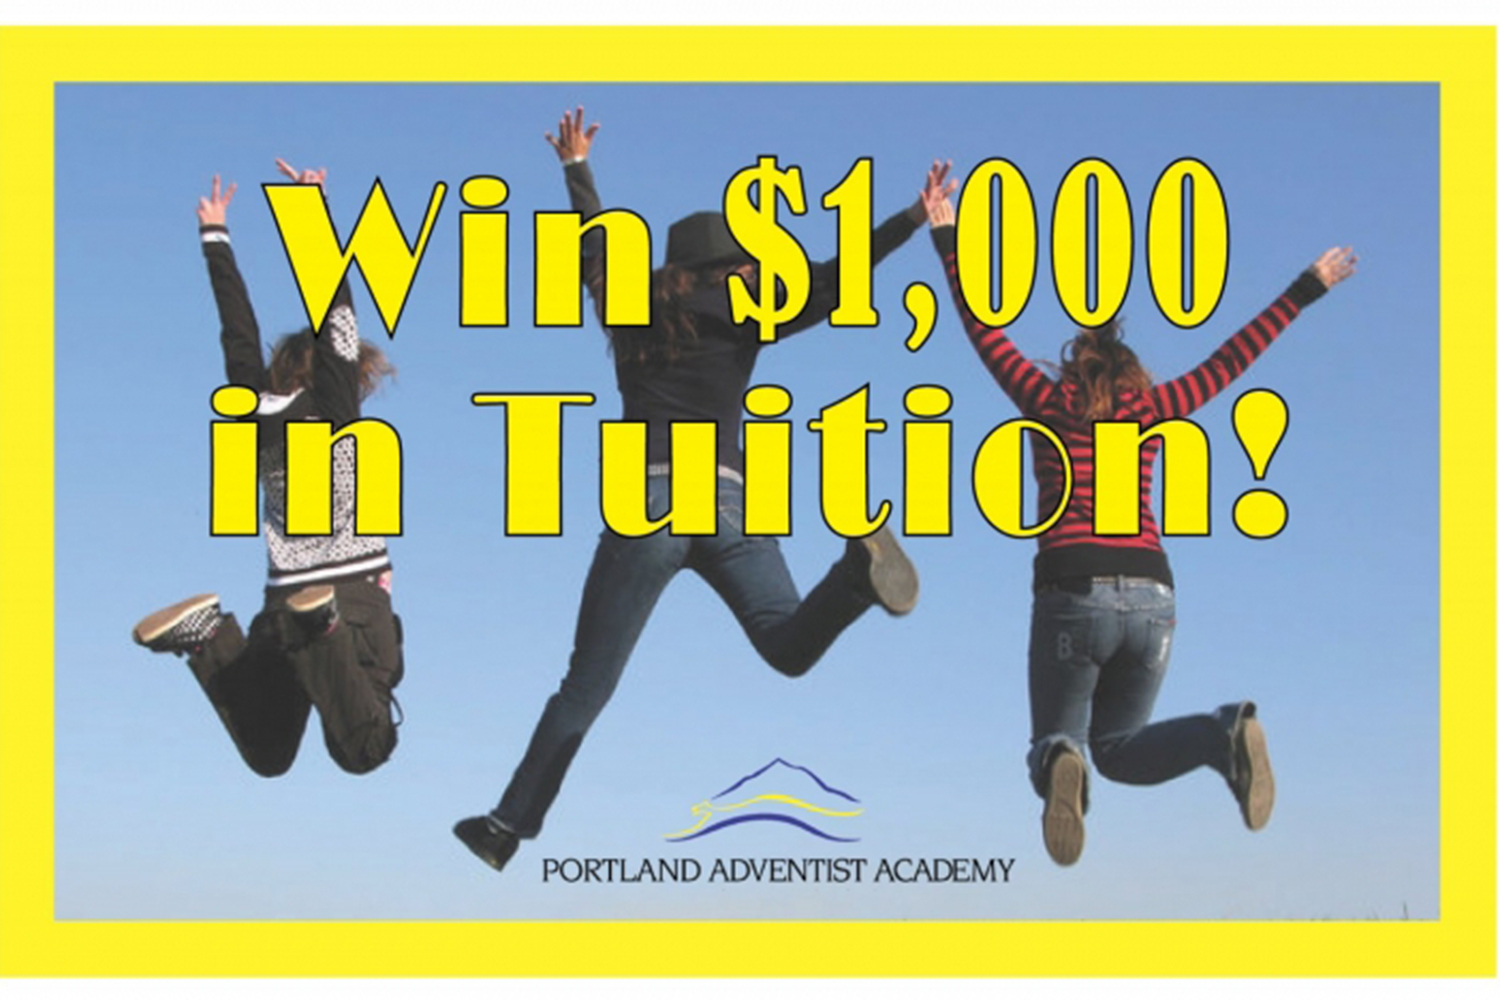 Portland Adventist Academy's $2,000 Enrollment Promotion